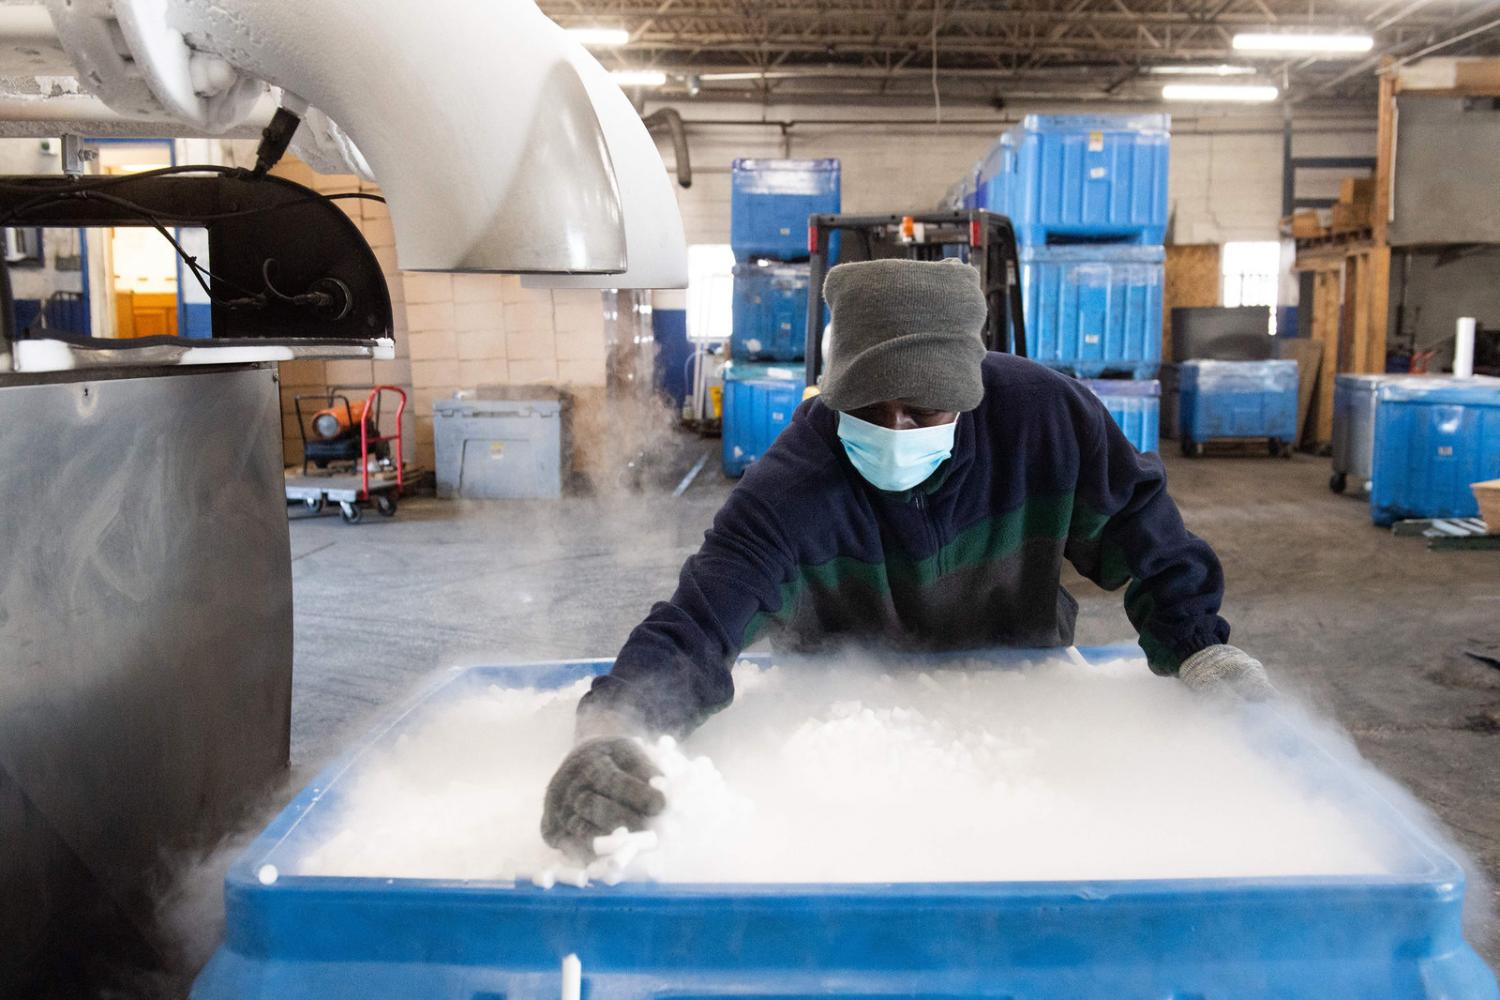 What Is A Cold Chain? And Why Do So Many Vaccines Need It?